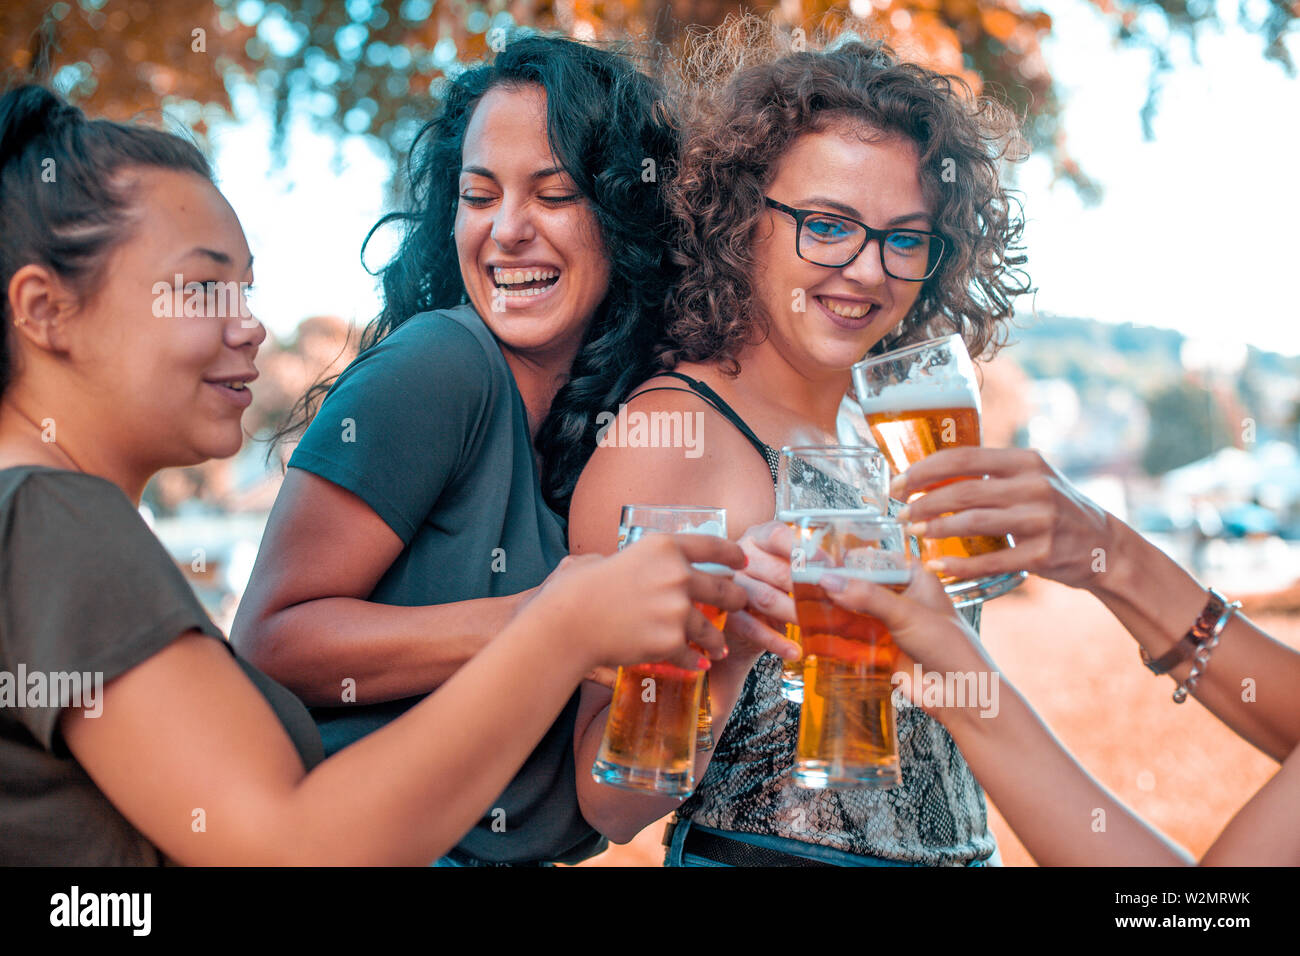 Happy group of best female friends drinking light beer - Friendship concept with young female friends enjoying time and having genuine fun at outdoor - Stock Image